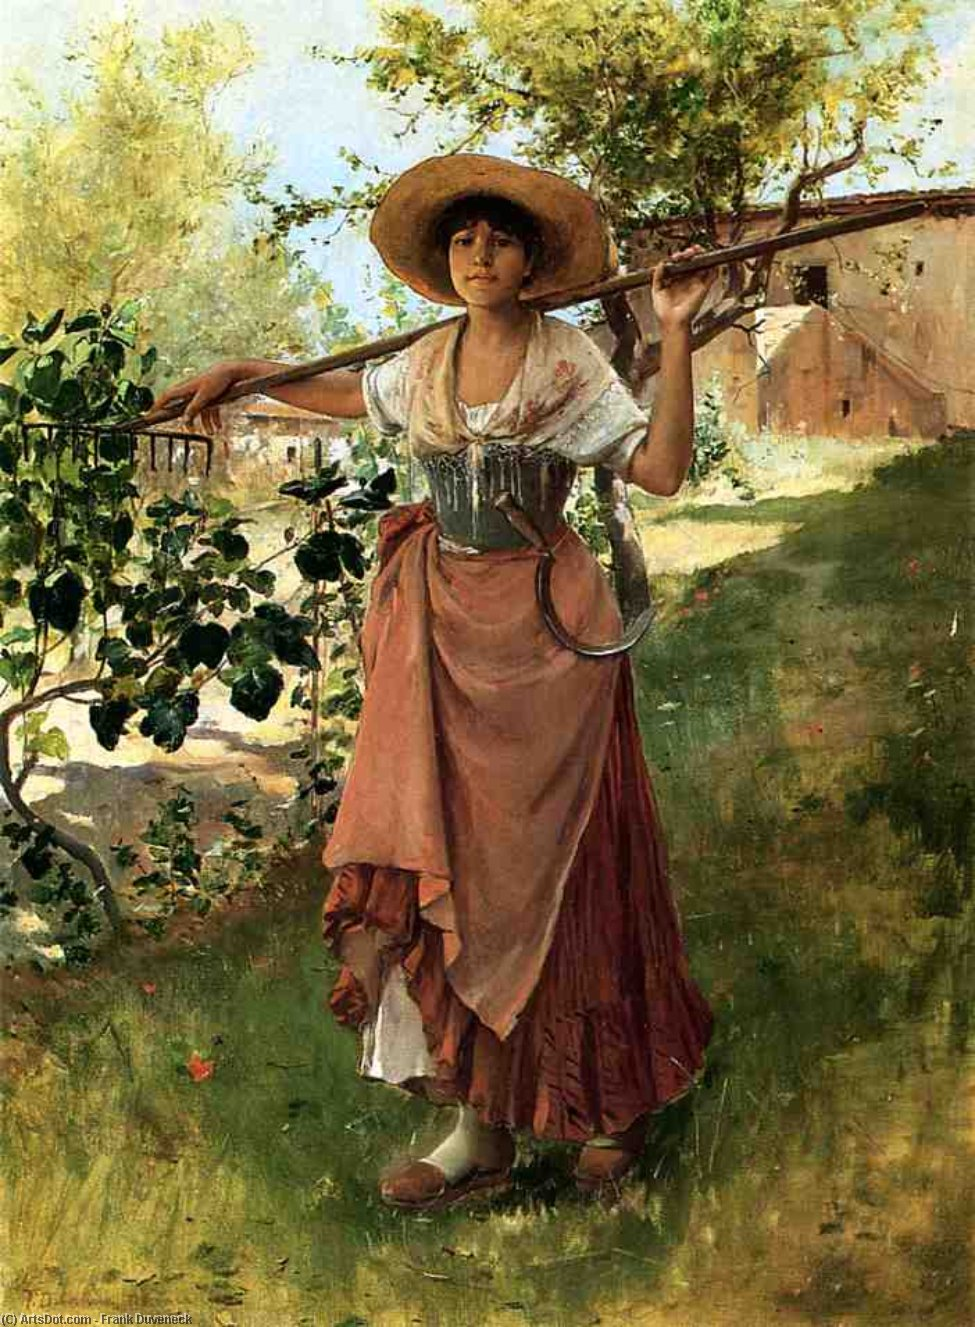 Italian Girl with Rake, Oil On Canvas by Frank Duveneck (1848-1919, United States)